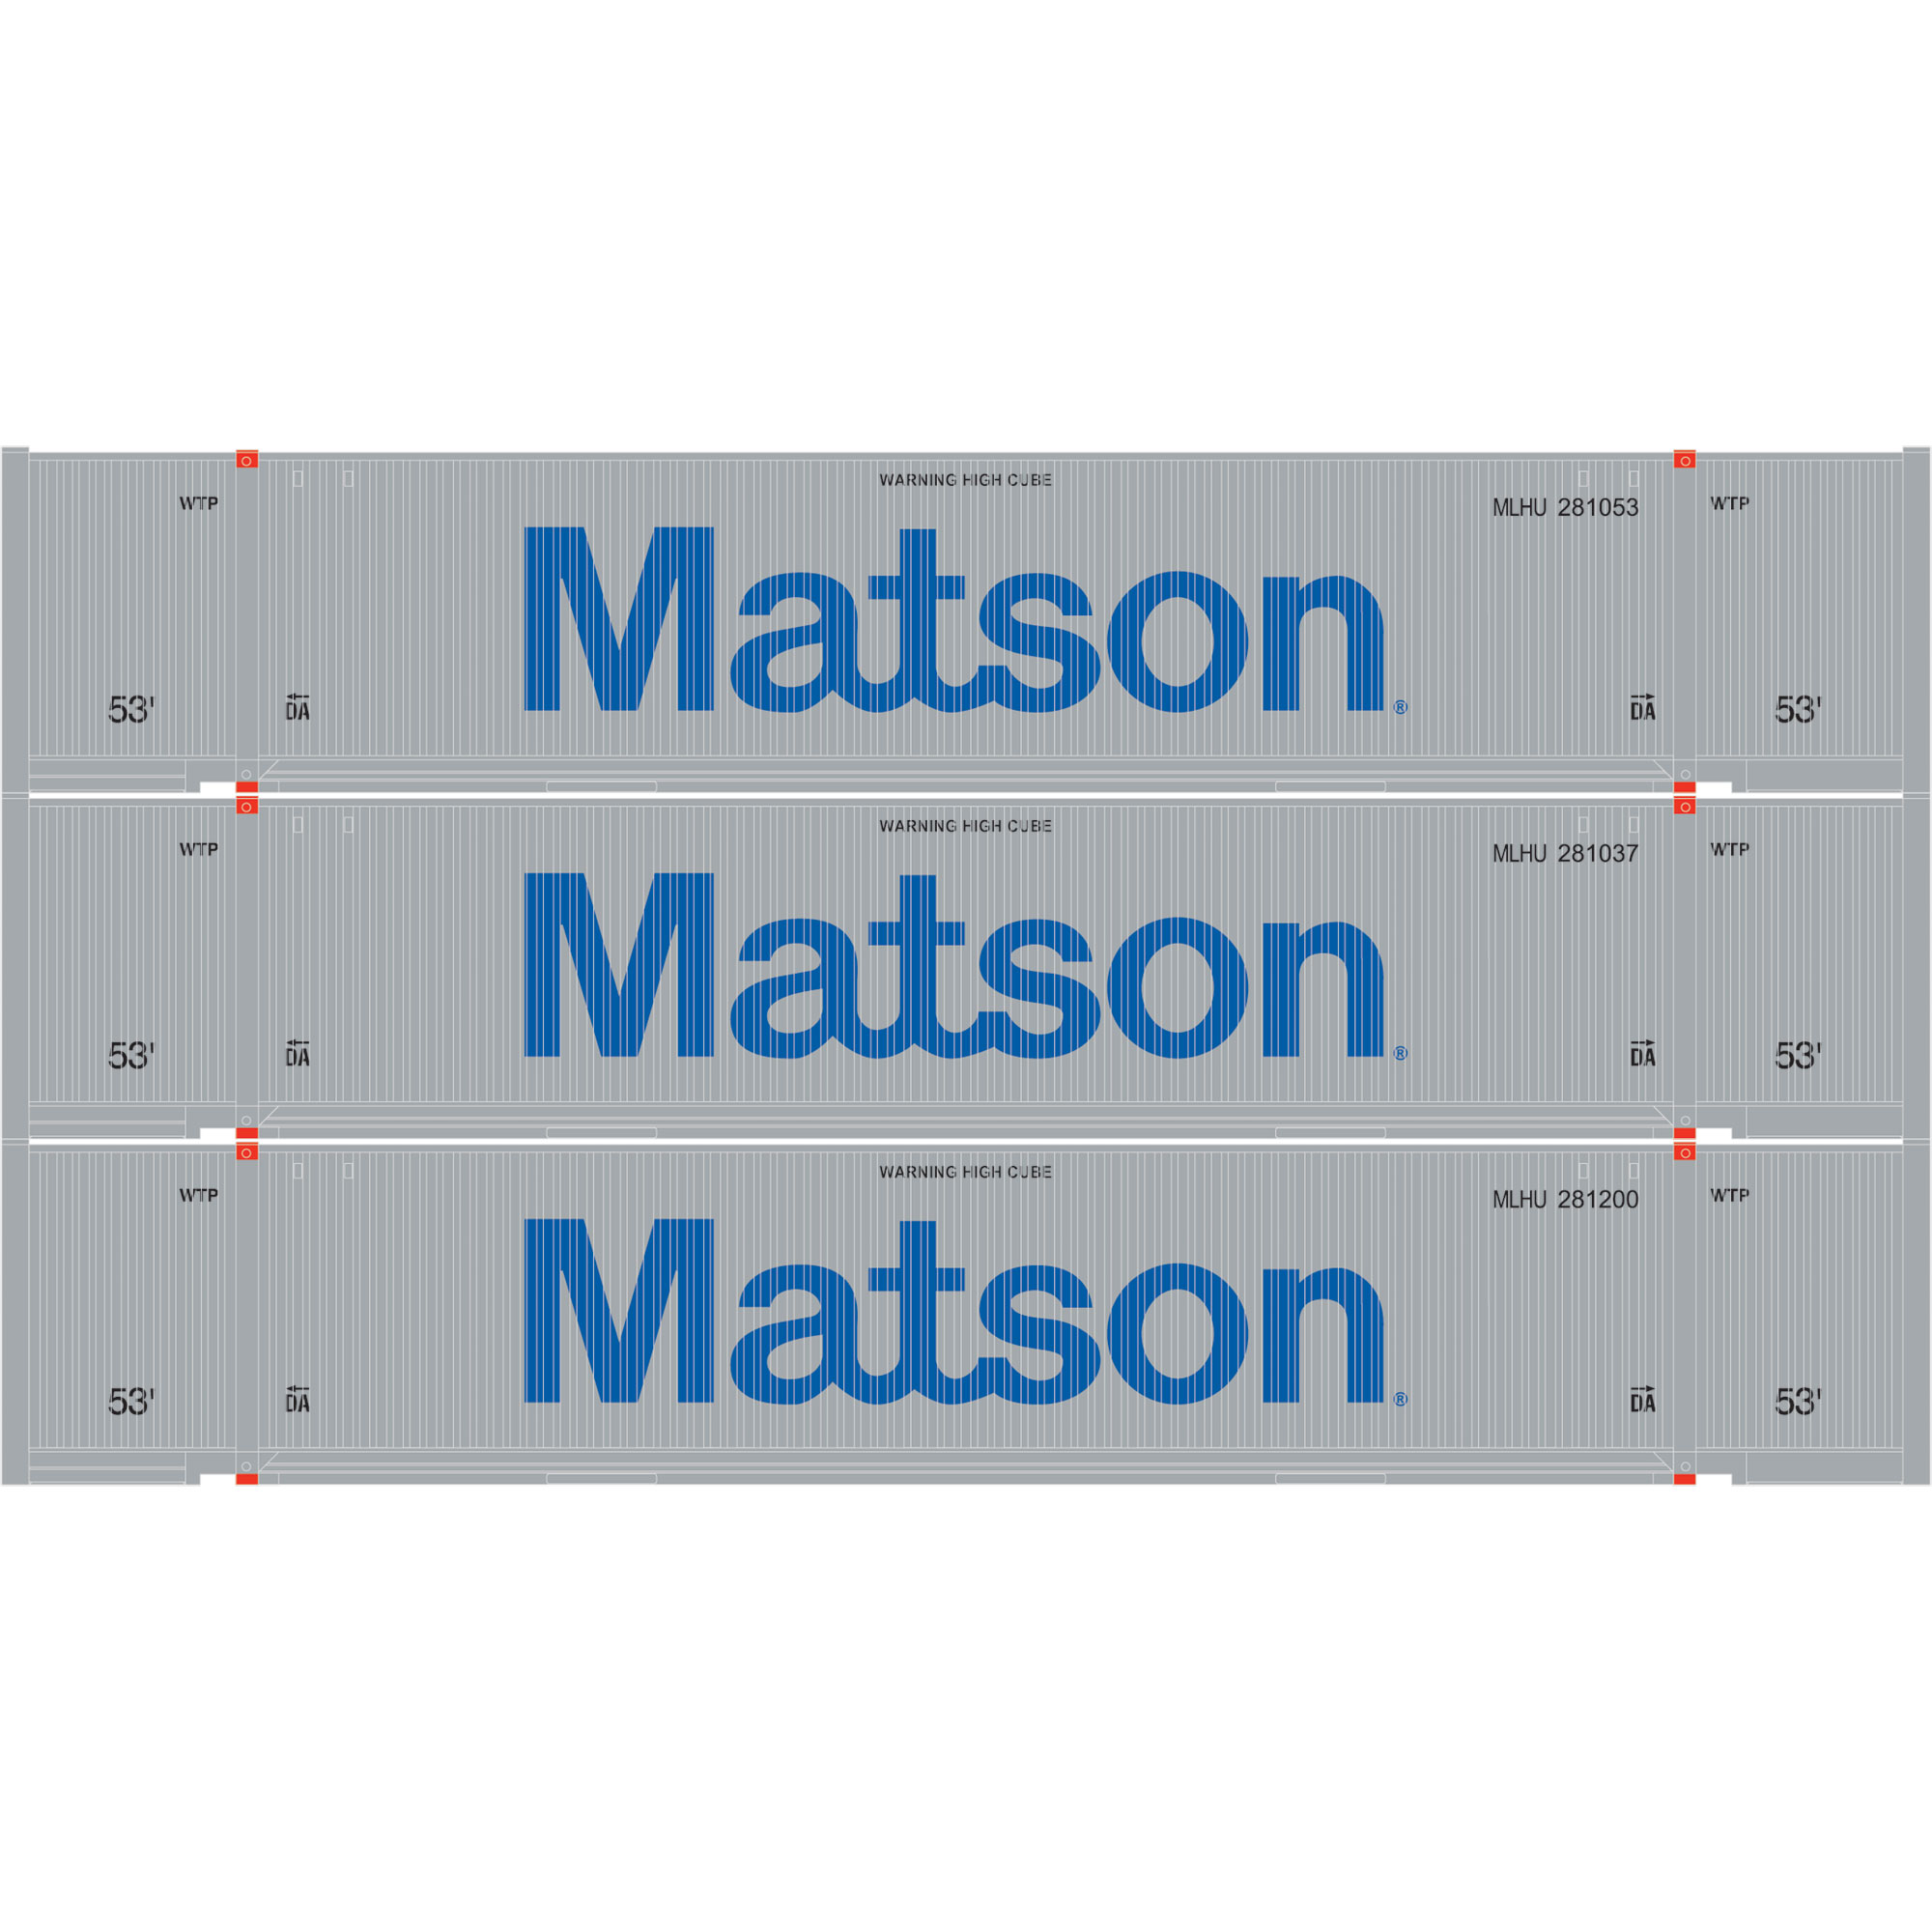 Ho rtr 53 39 jindo container matson 1 3 ath29359 athearn trains - Matson container homes ...